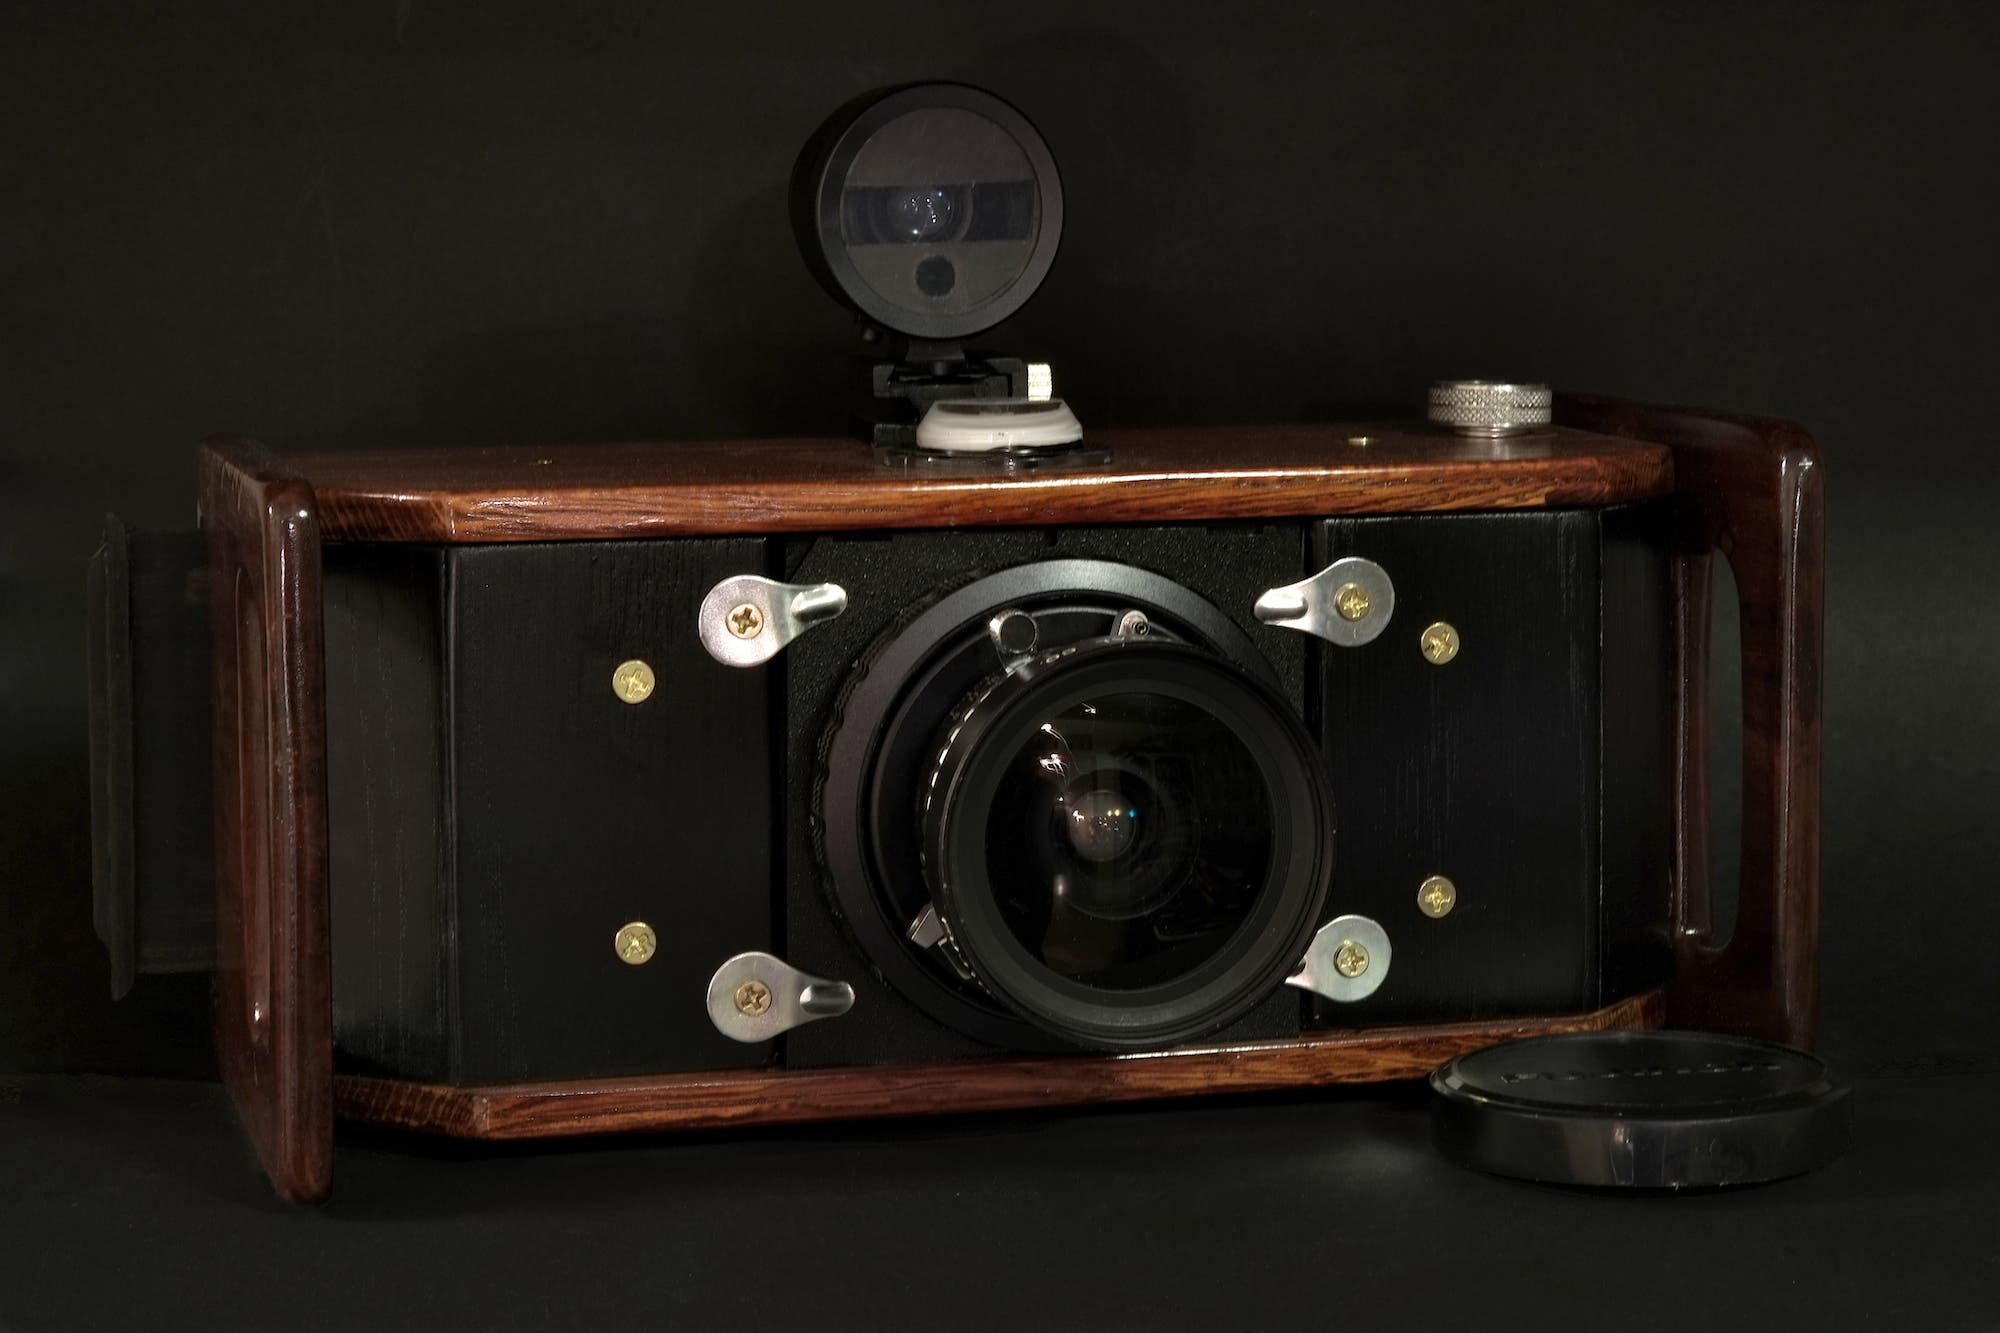 Eirik Loves to Make His Own Stuff, So He Built Himself a 6x17 Panoramic Medium Format Camera - The Phoblographer